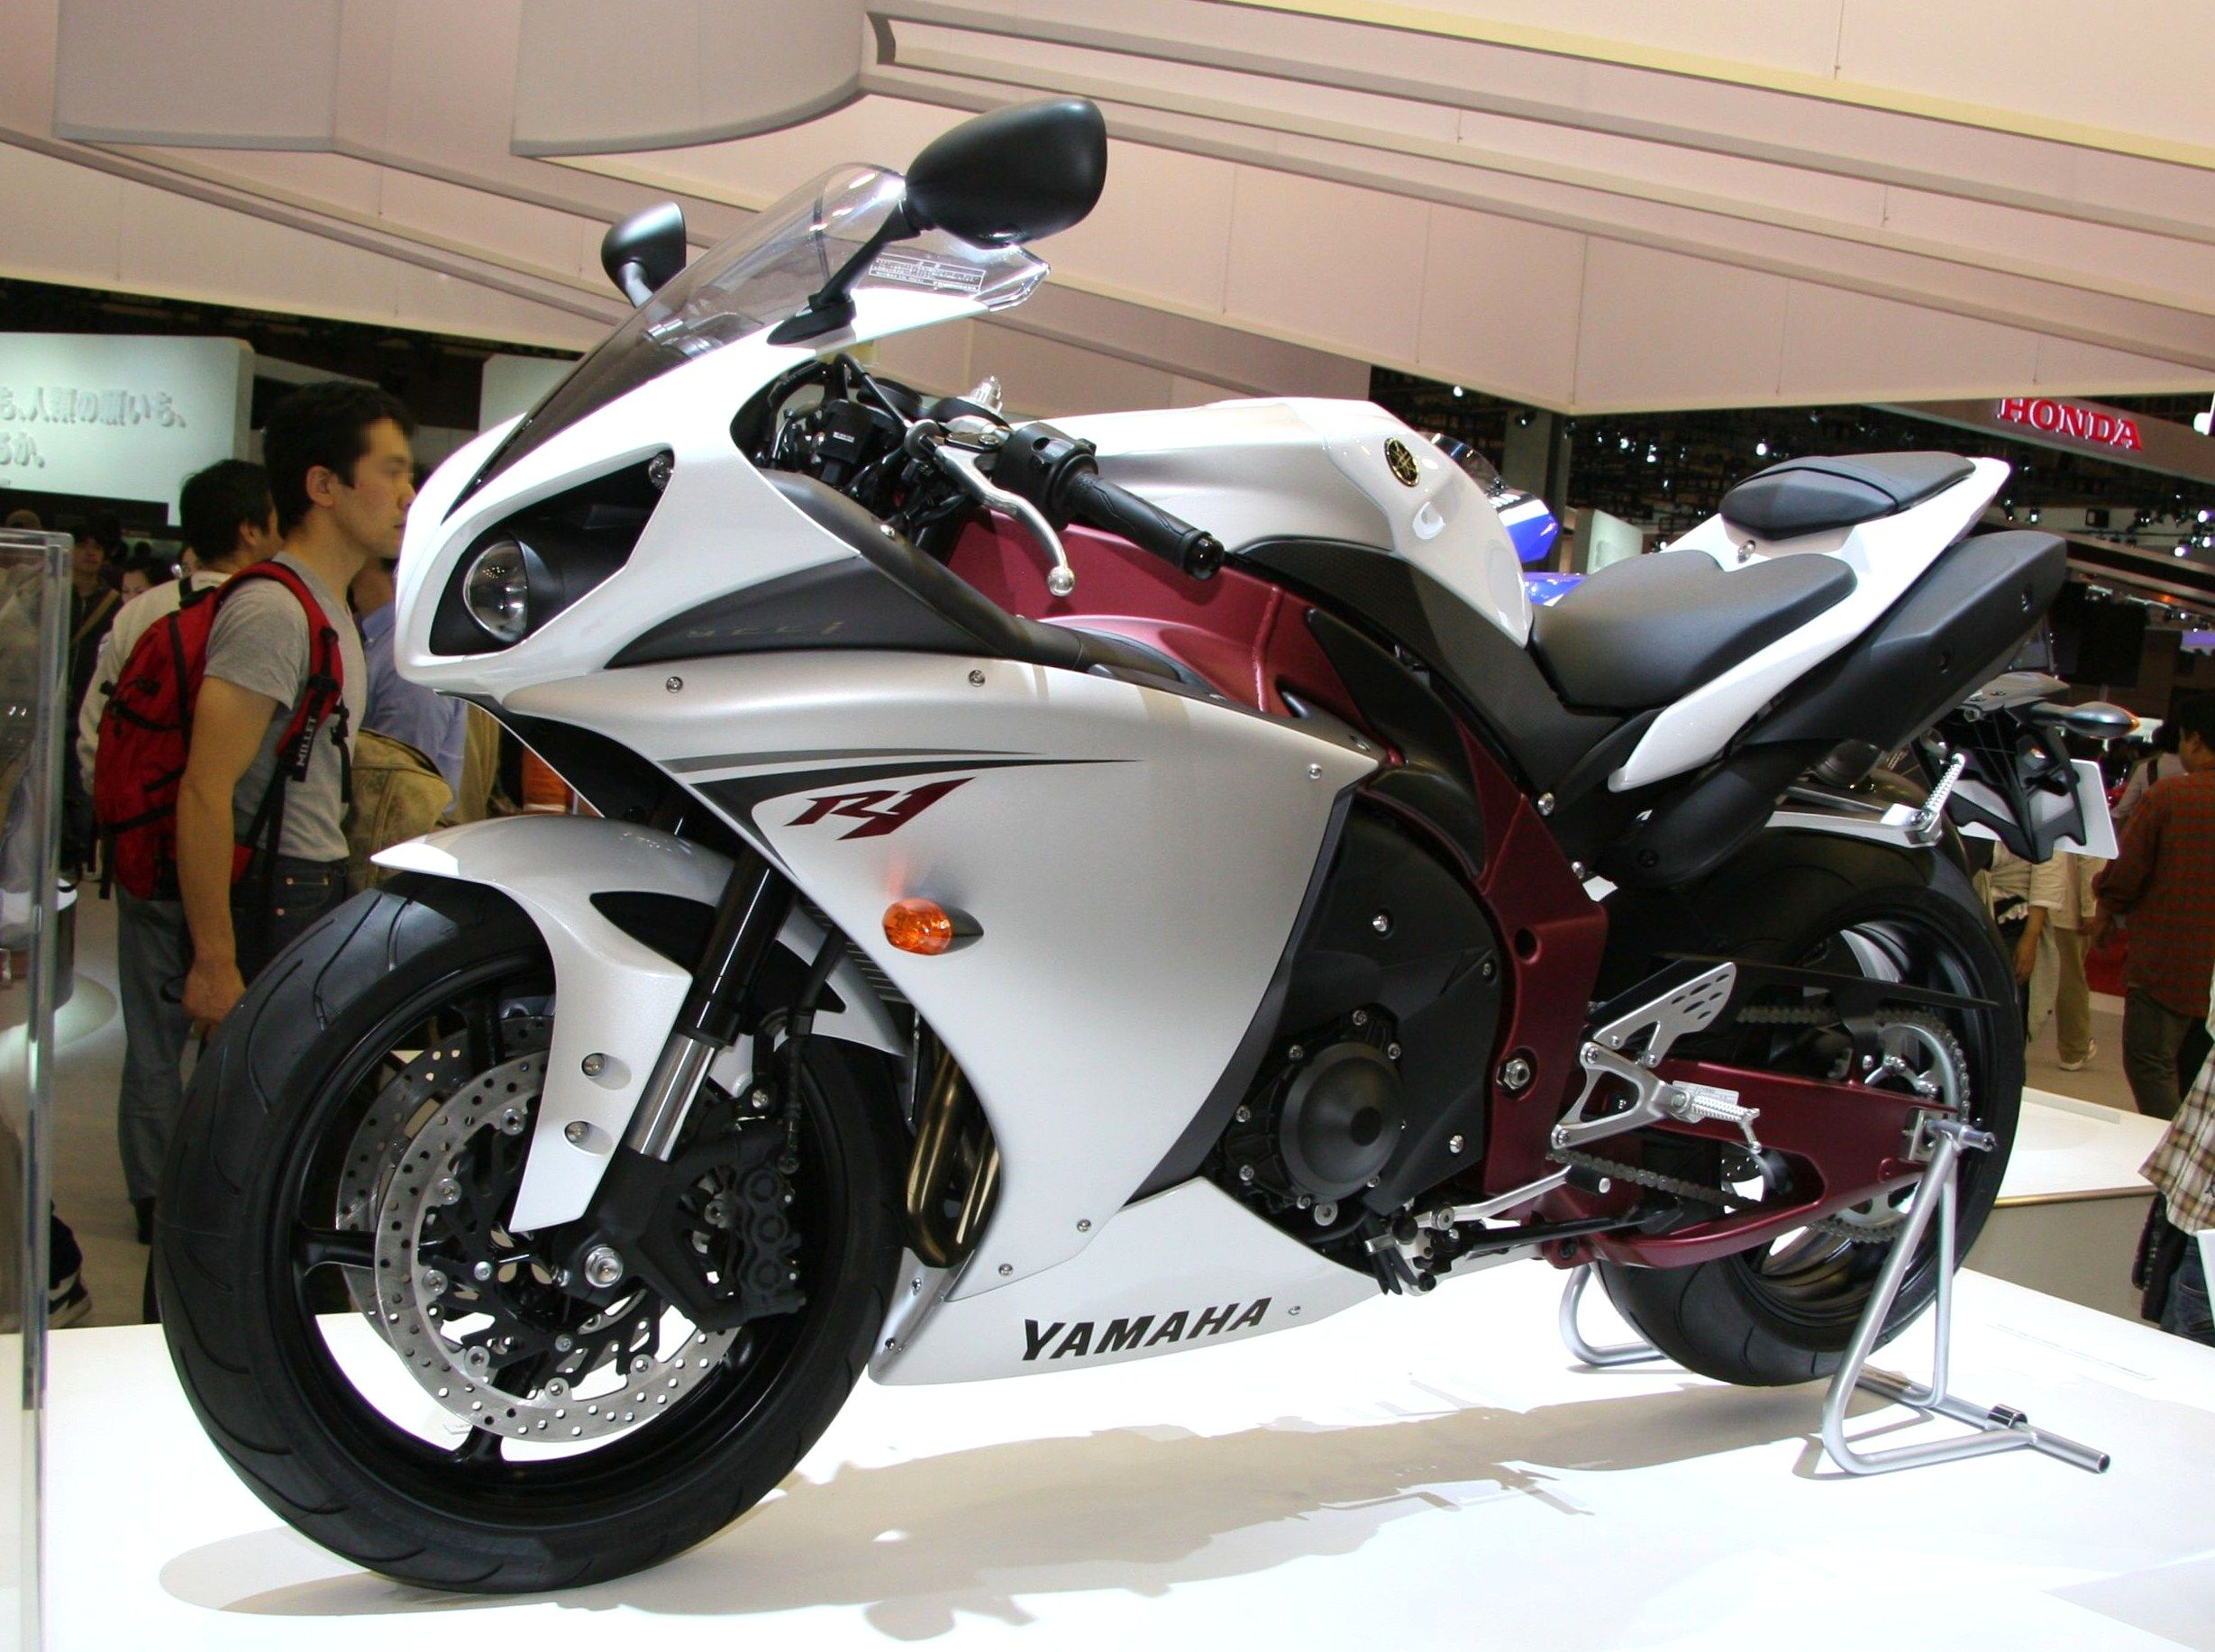 Yamaha YZF-R1 - Wikipedia, the free encyclopedia